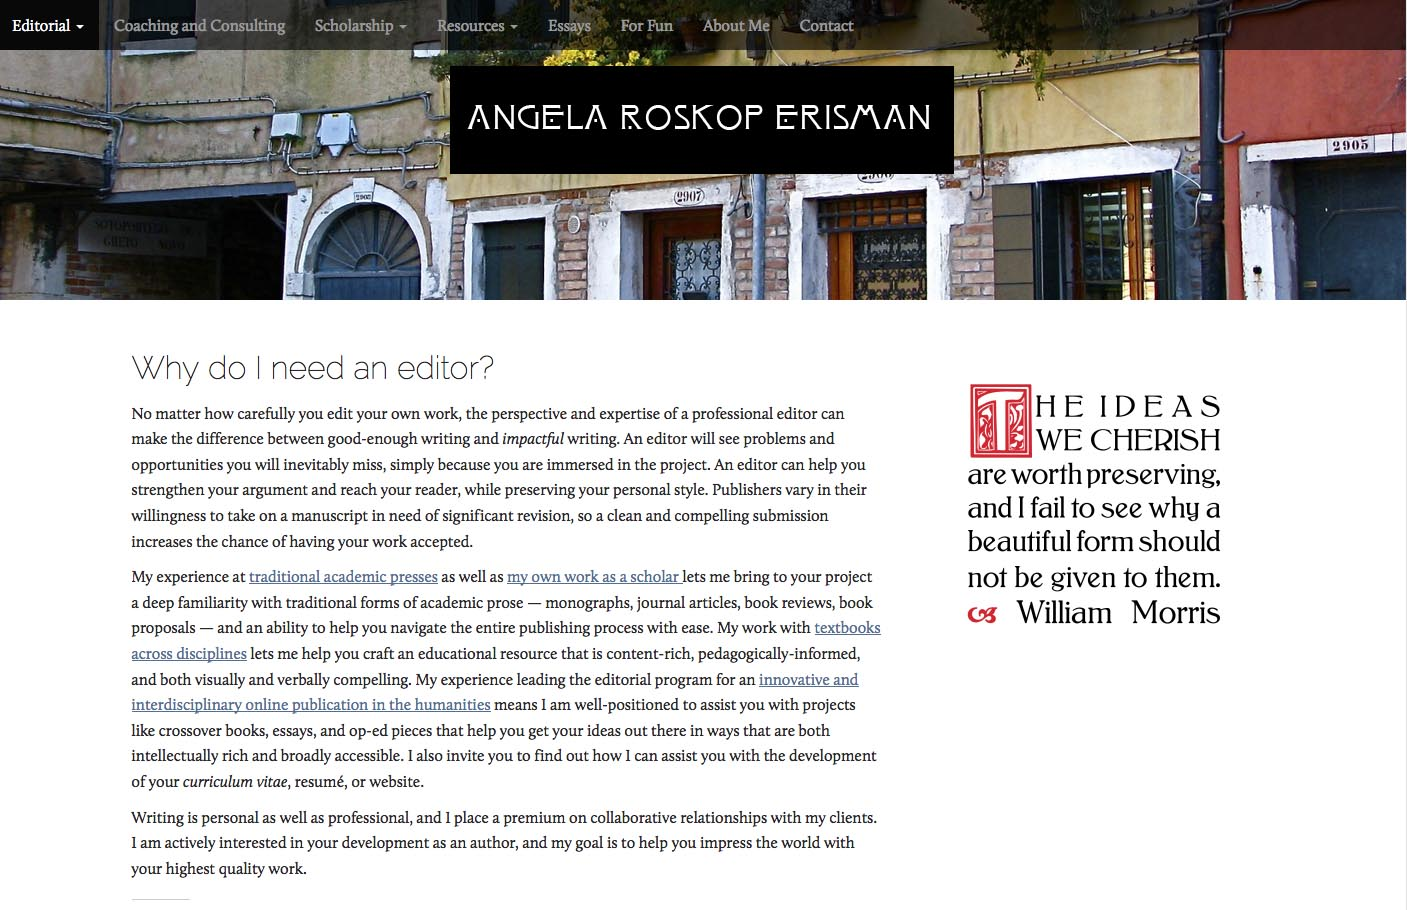 angela roskop erisman editorial angela roskop erisman are editorial website